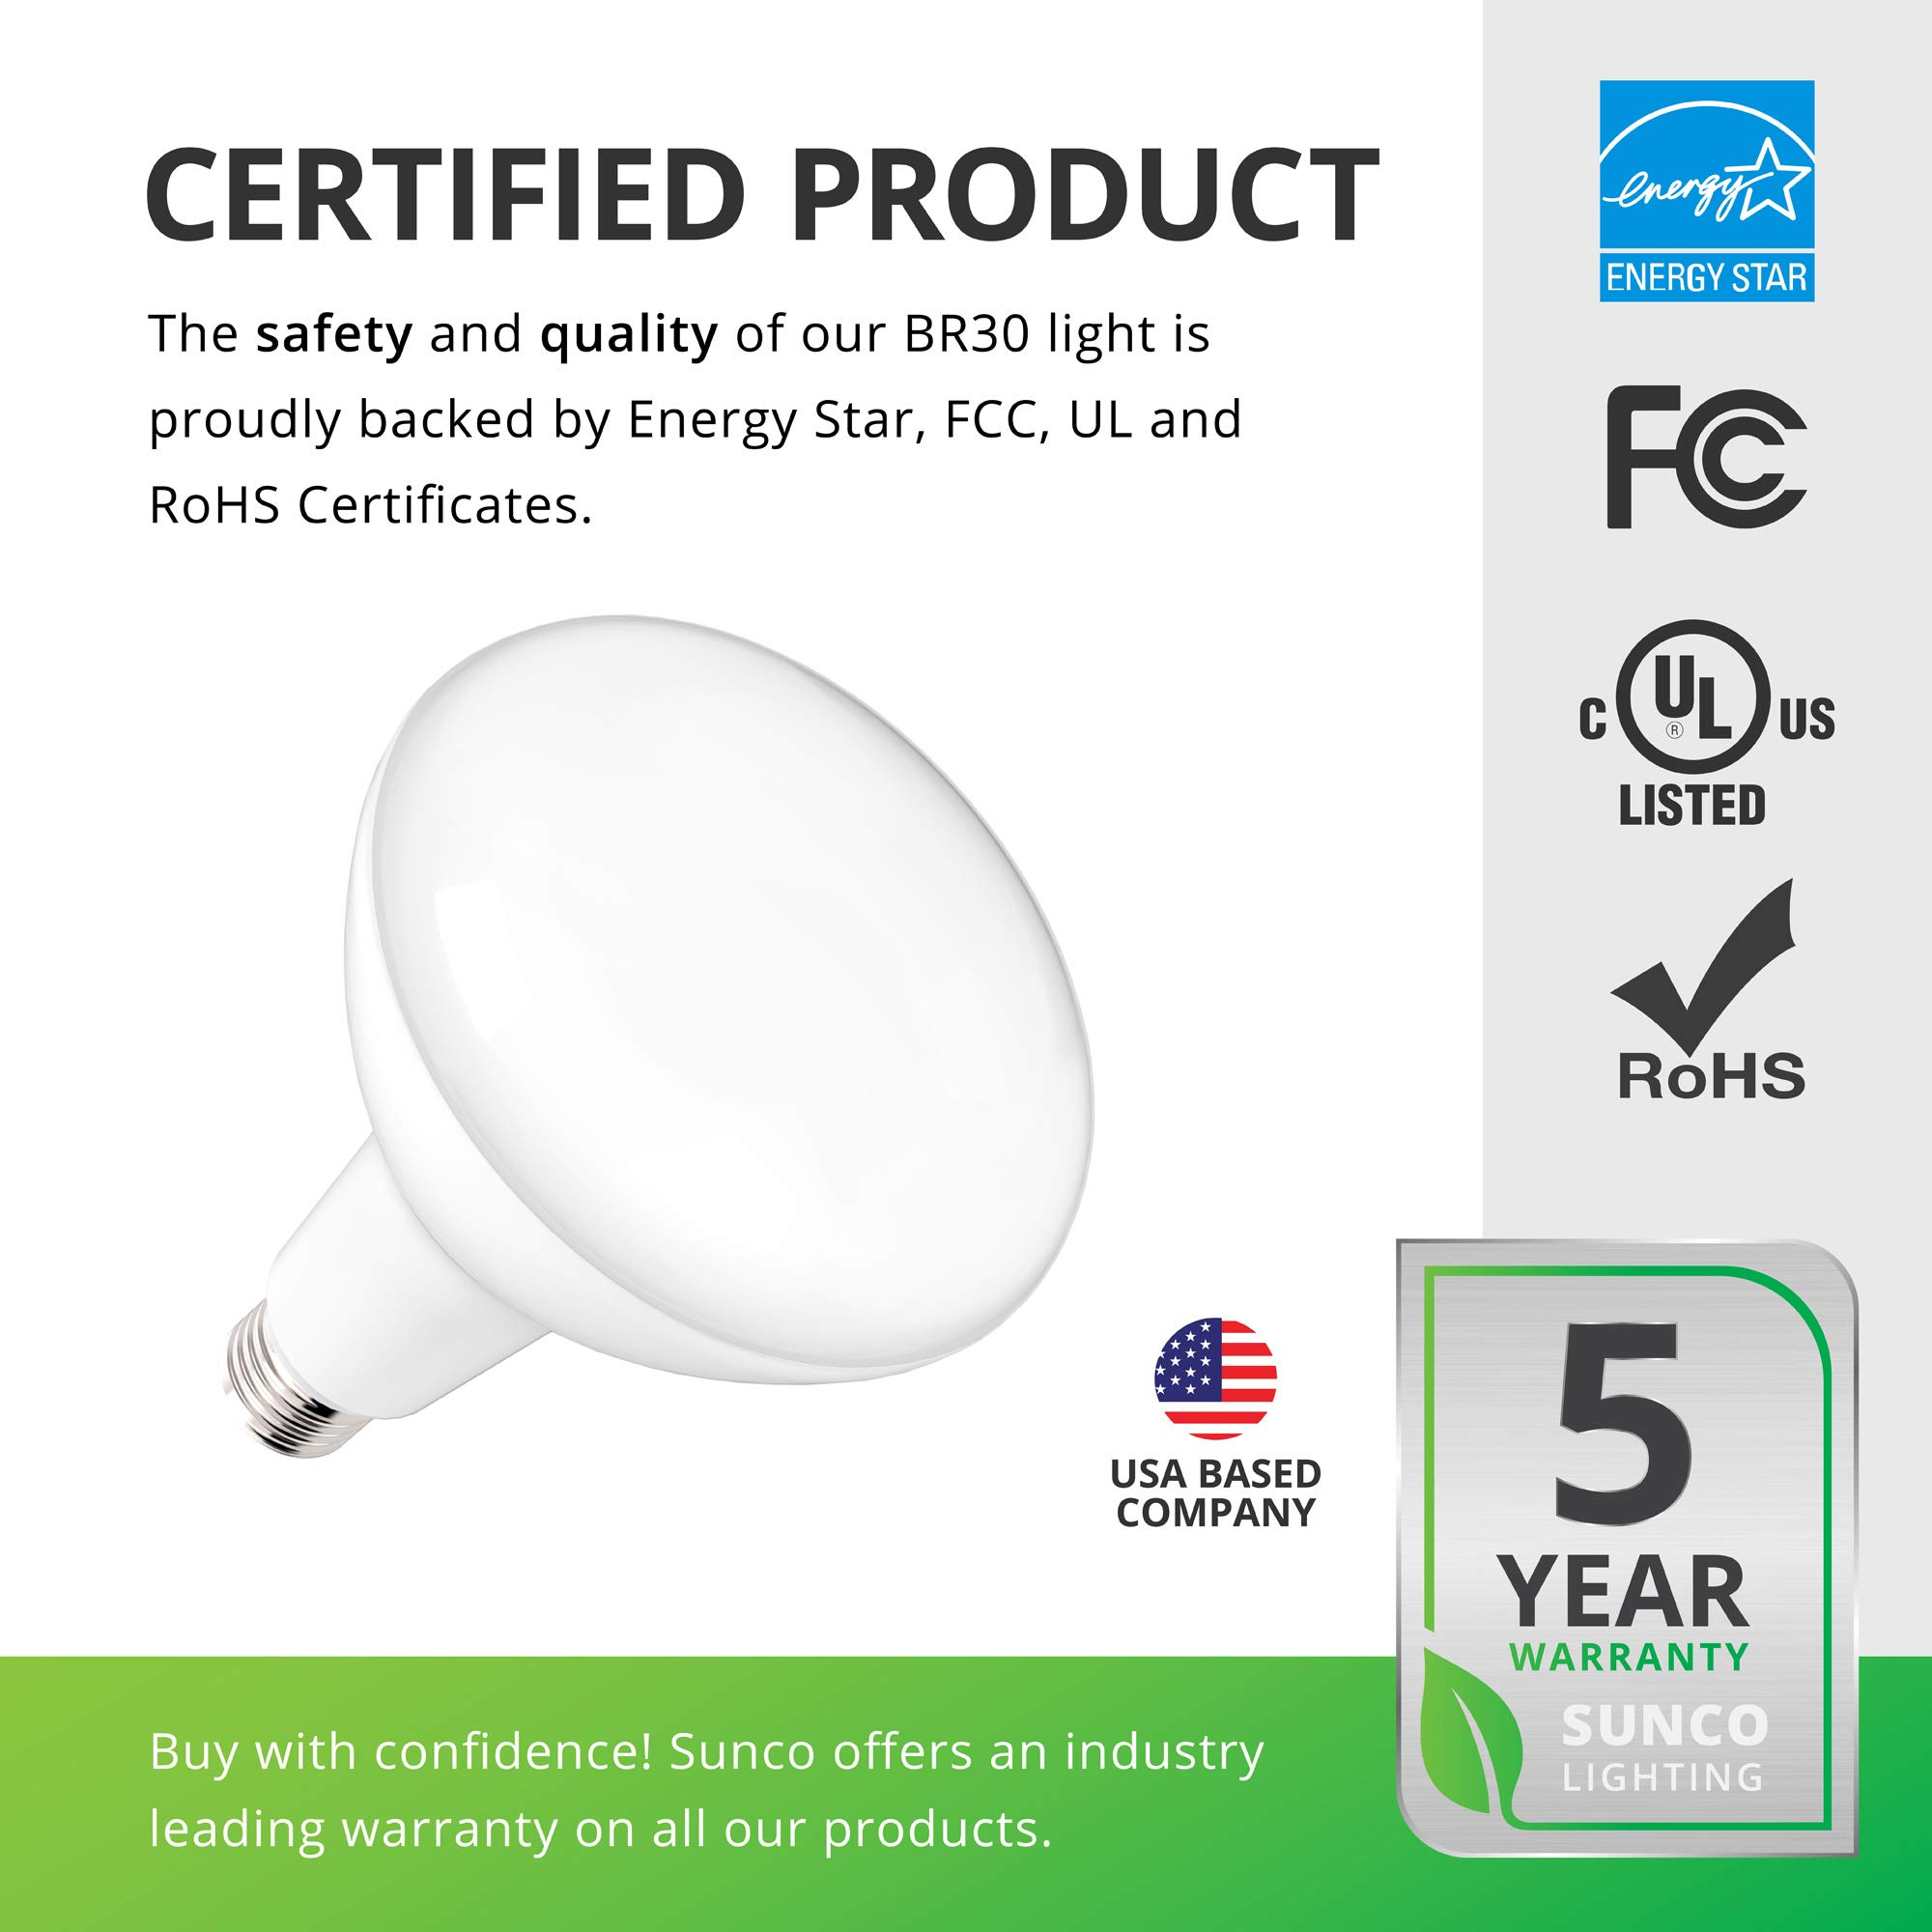 Sunco Lighting 48 Pack BR30 LED Bulb 11W=65W, 2700K Soft White, 850 LM, E26 Base, Dimmable, Indoor Flood Light for Cans - UL & Energy Star by Sunco Lighting (Image #6)